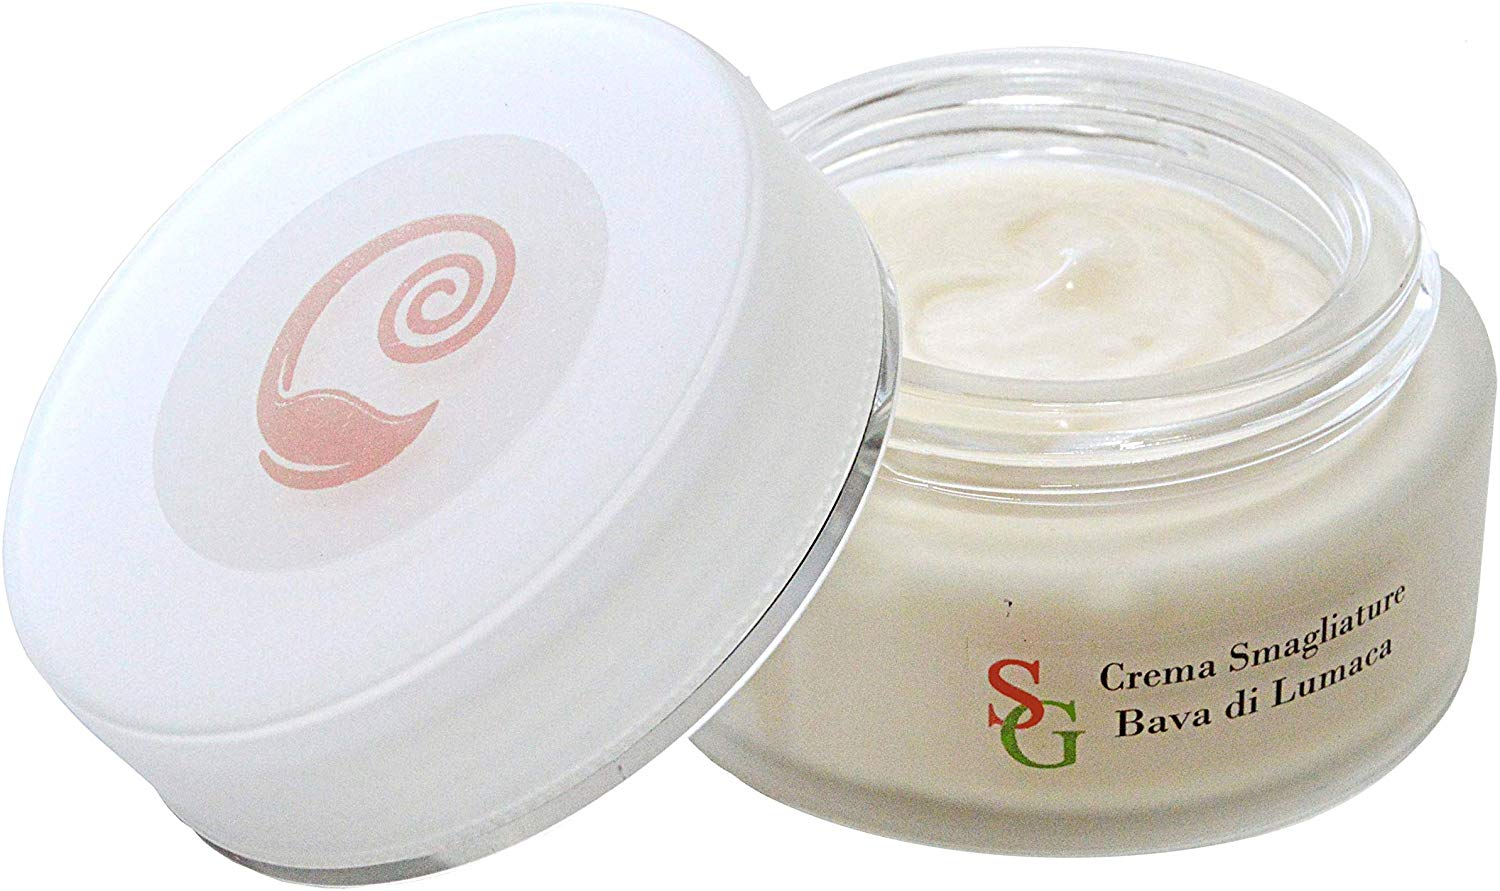 Crema Intensiva Anti Smagliature